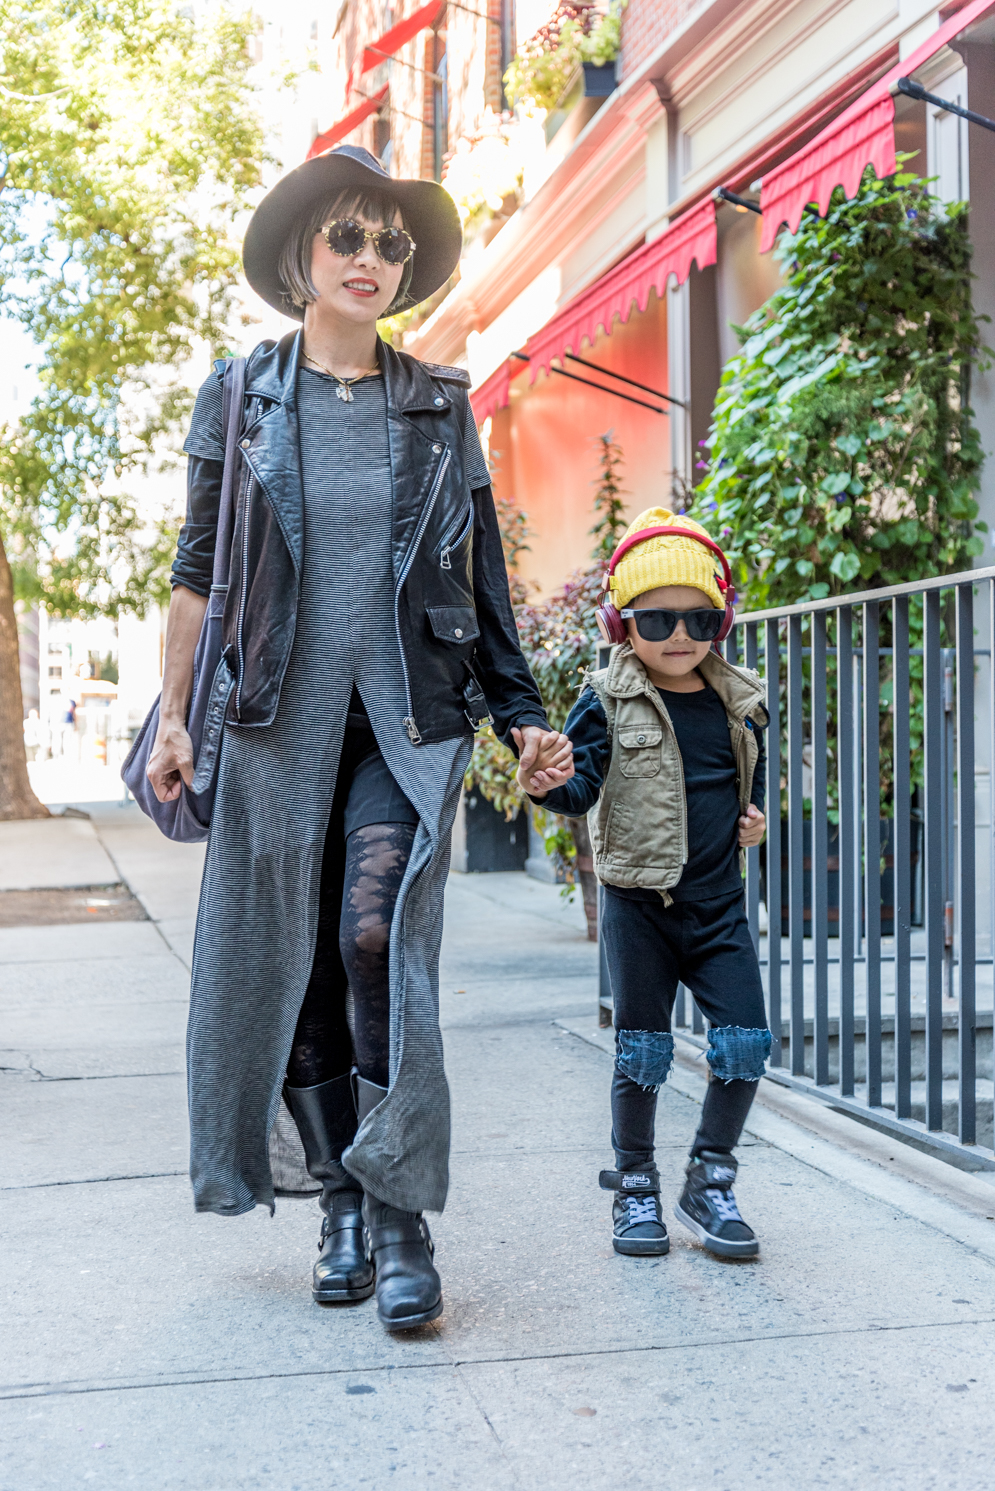 ROCK MAMA NYC LIFESTYLE BLOG - fall fashion 2015 must have items